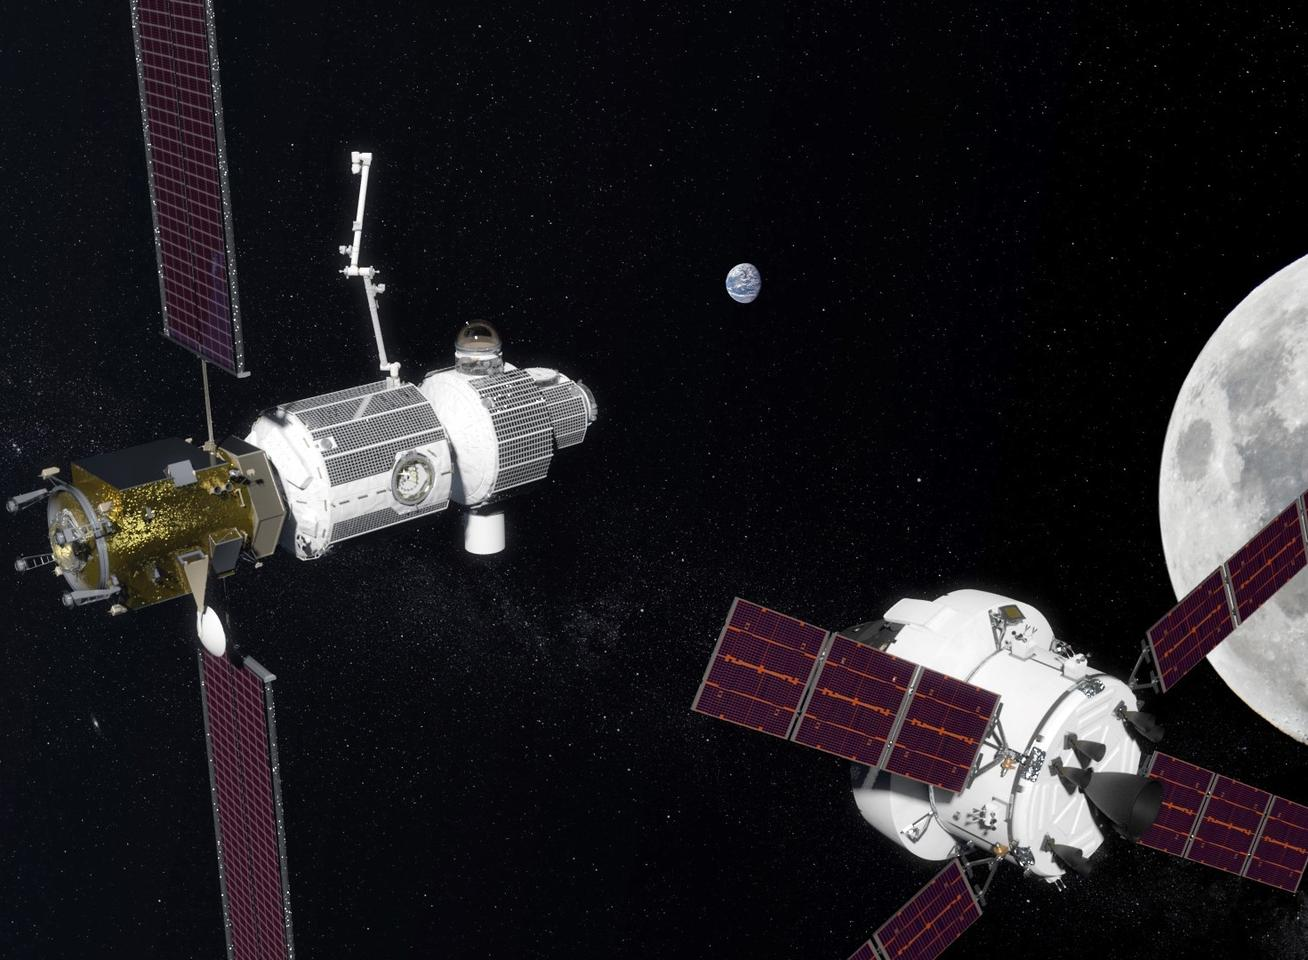 The deep space gateway concept is designed as a jumping off point for deep space manned missions